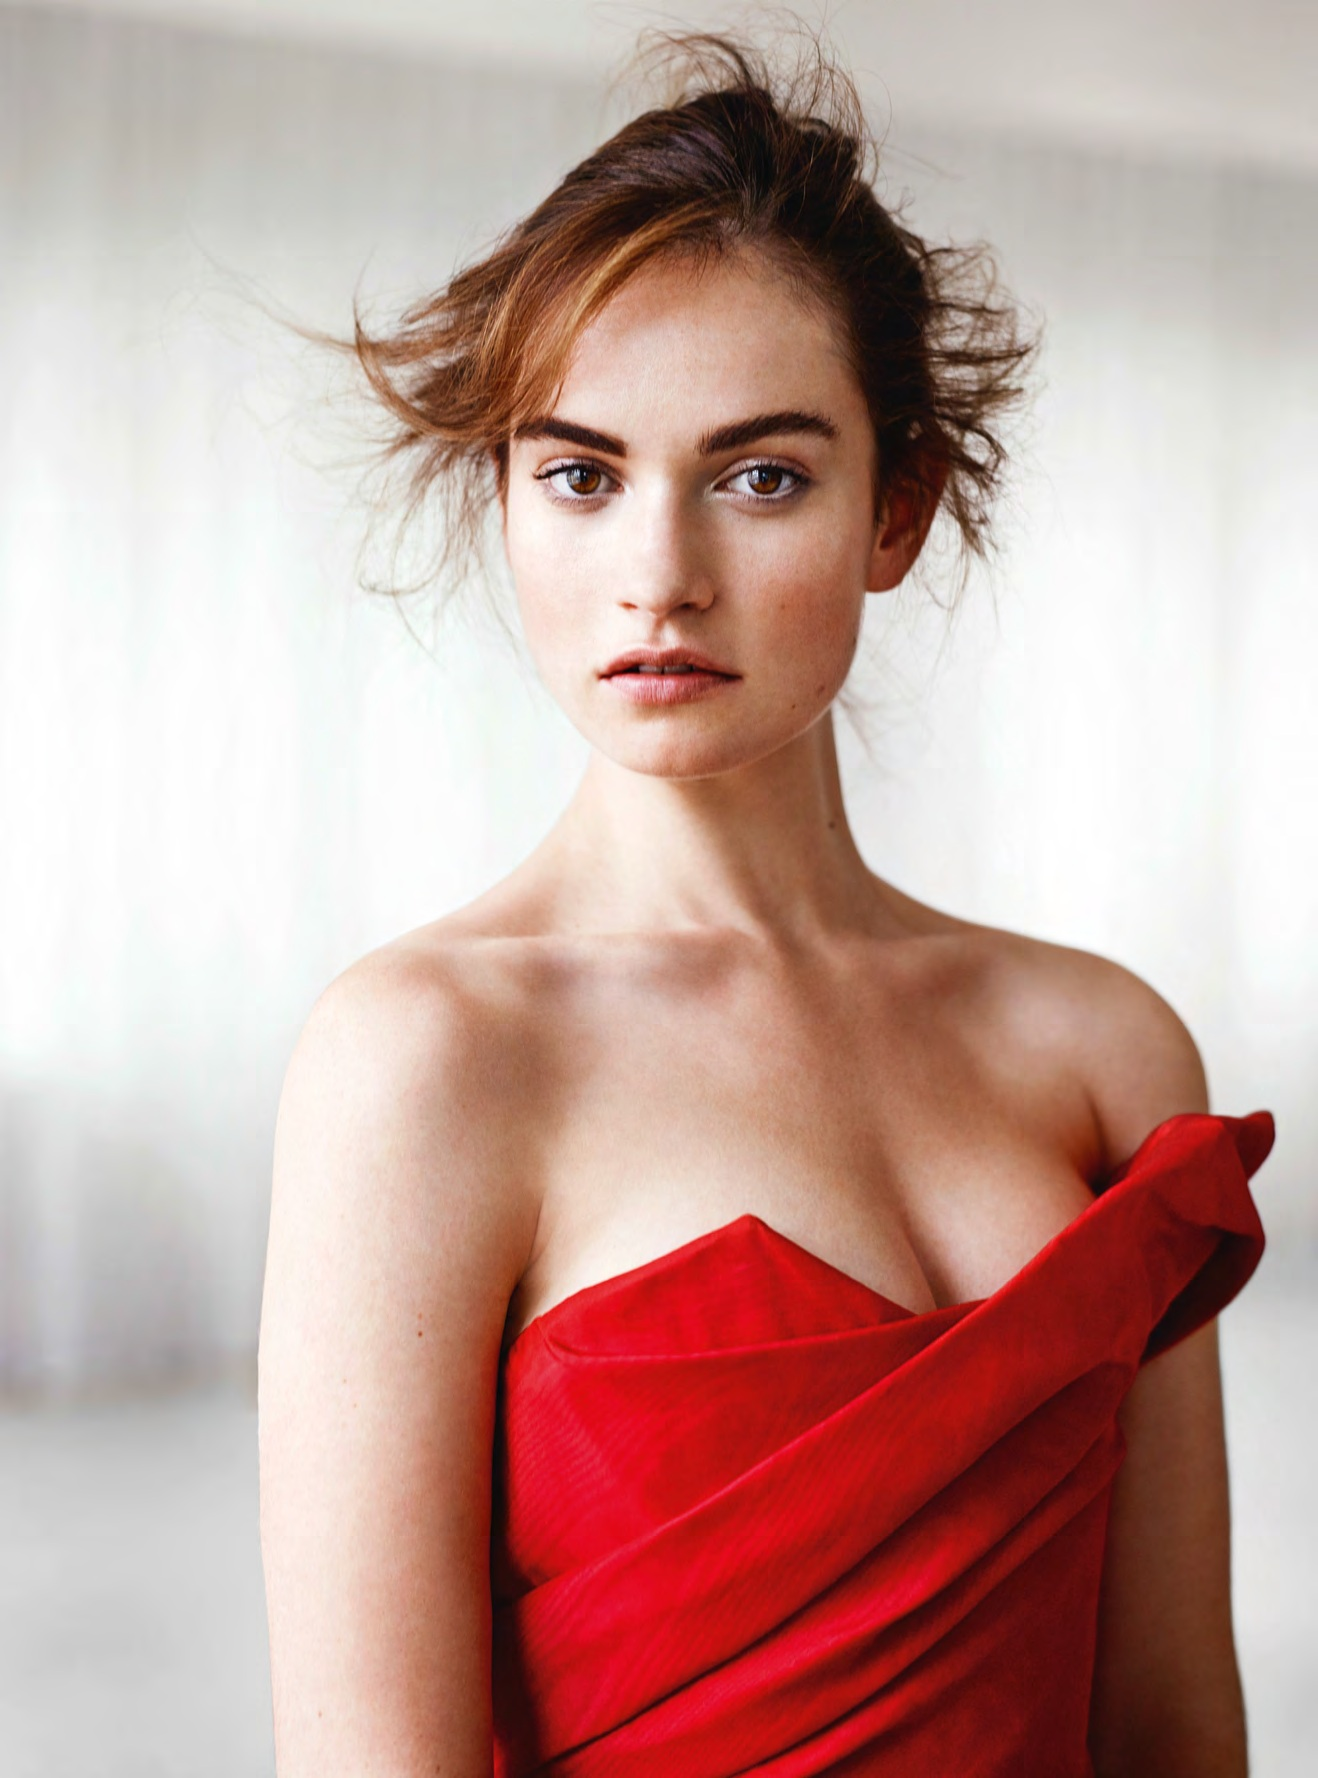 Lily james hot